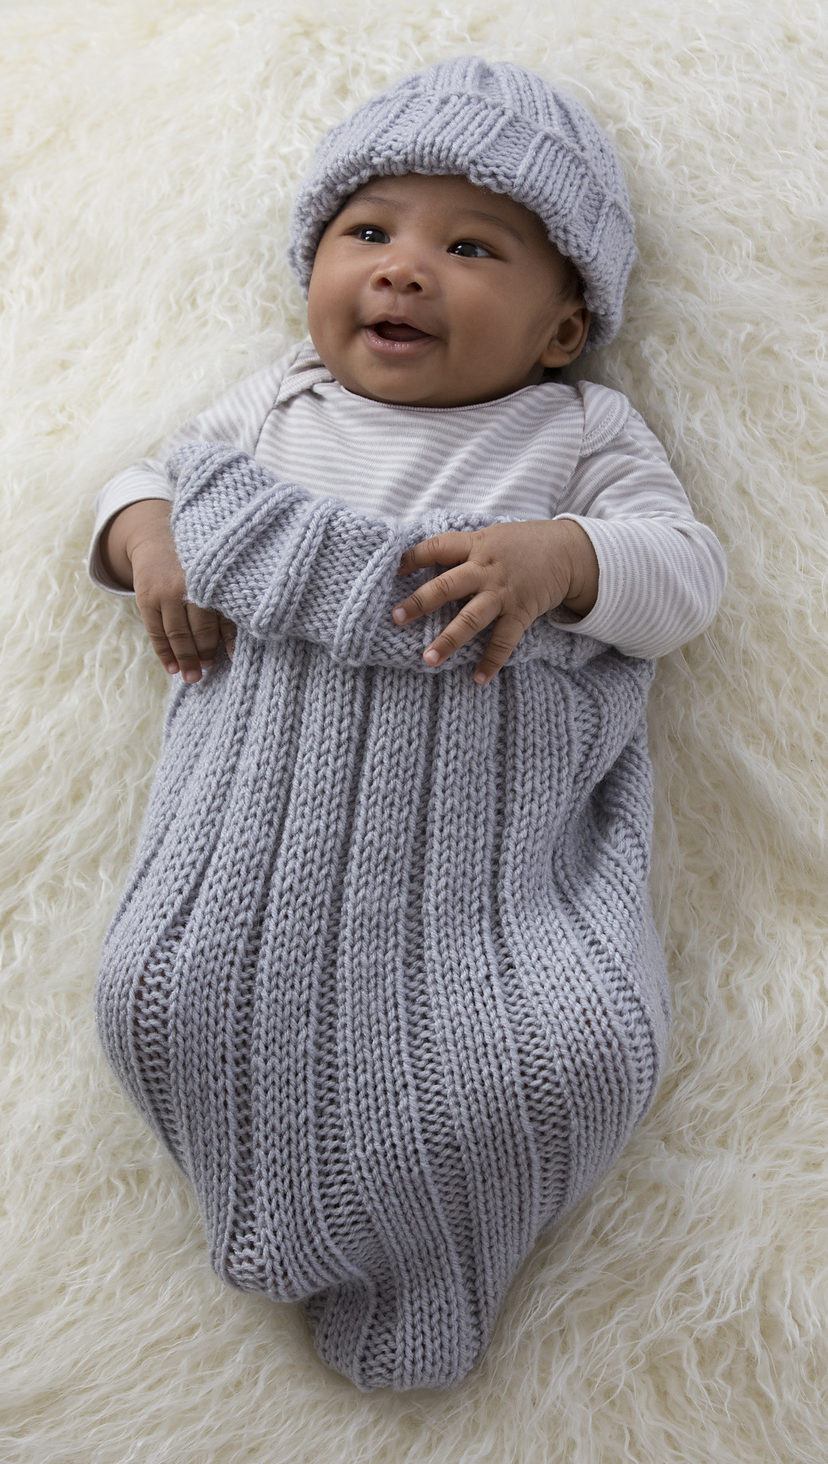 Knitting for Newborns Best Of Baby Cocoon Snuggly Sleep Sack Wrap Knitting Patterns Of Awesome 41 Images Knitting for Newborns